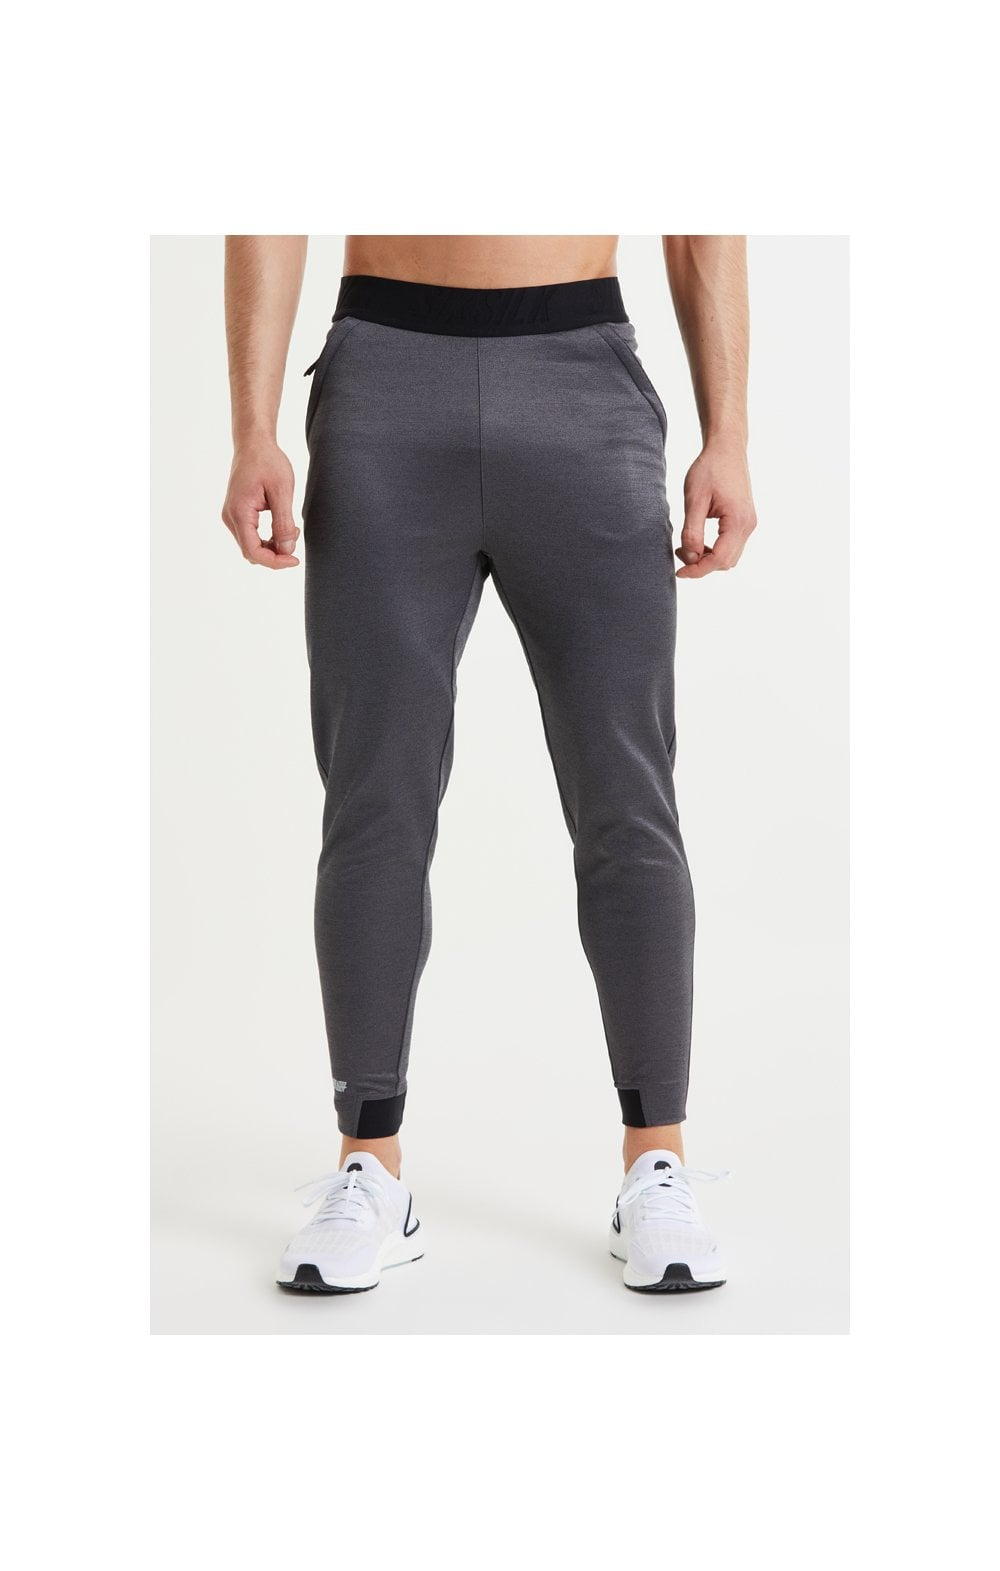 Load image into Gallery viewer, SikSilk Rapid Pants – Charcoal Marl